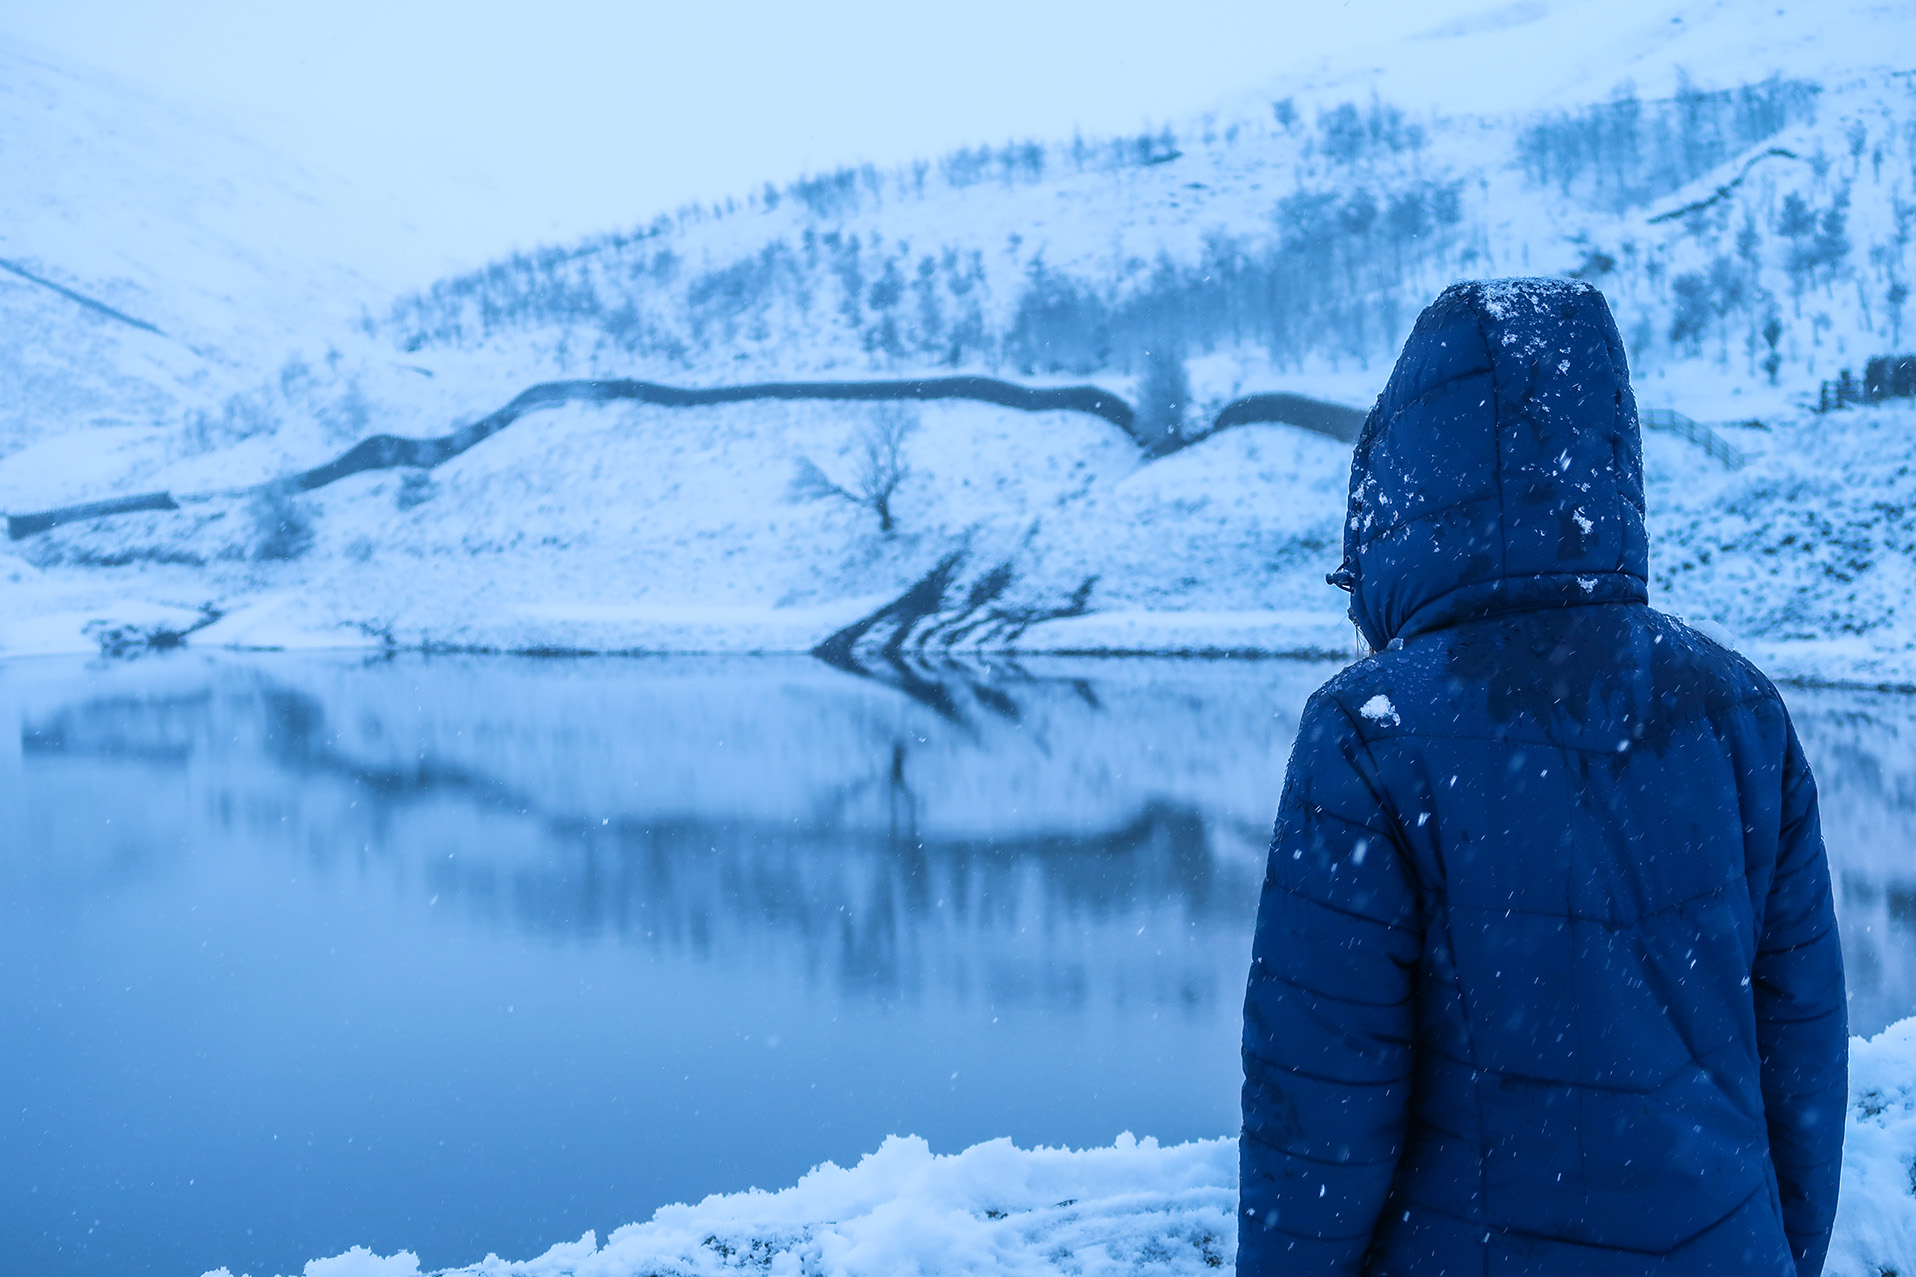 ogden reservoir in snow